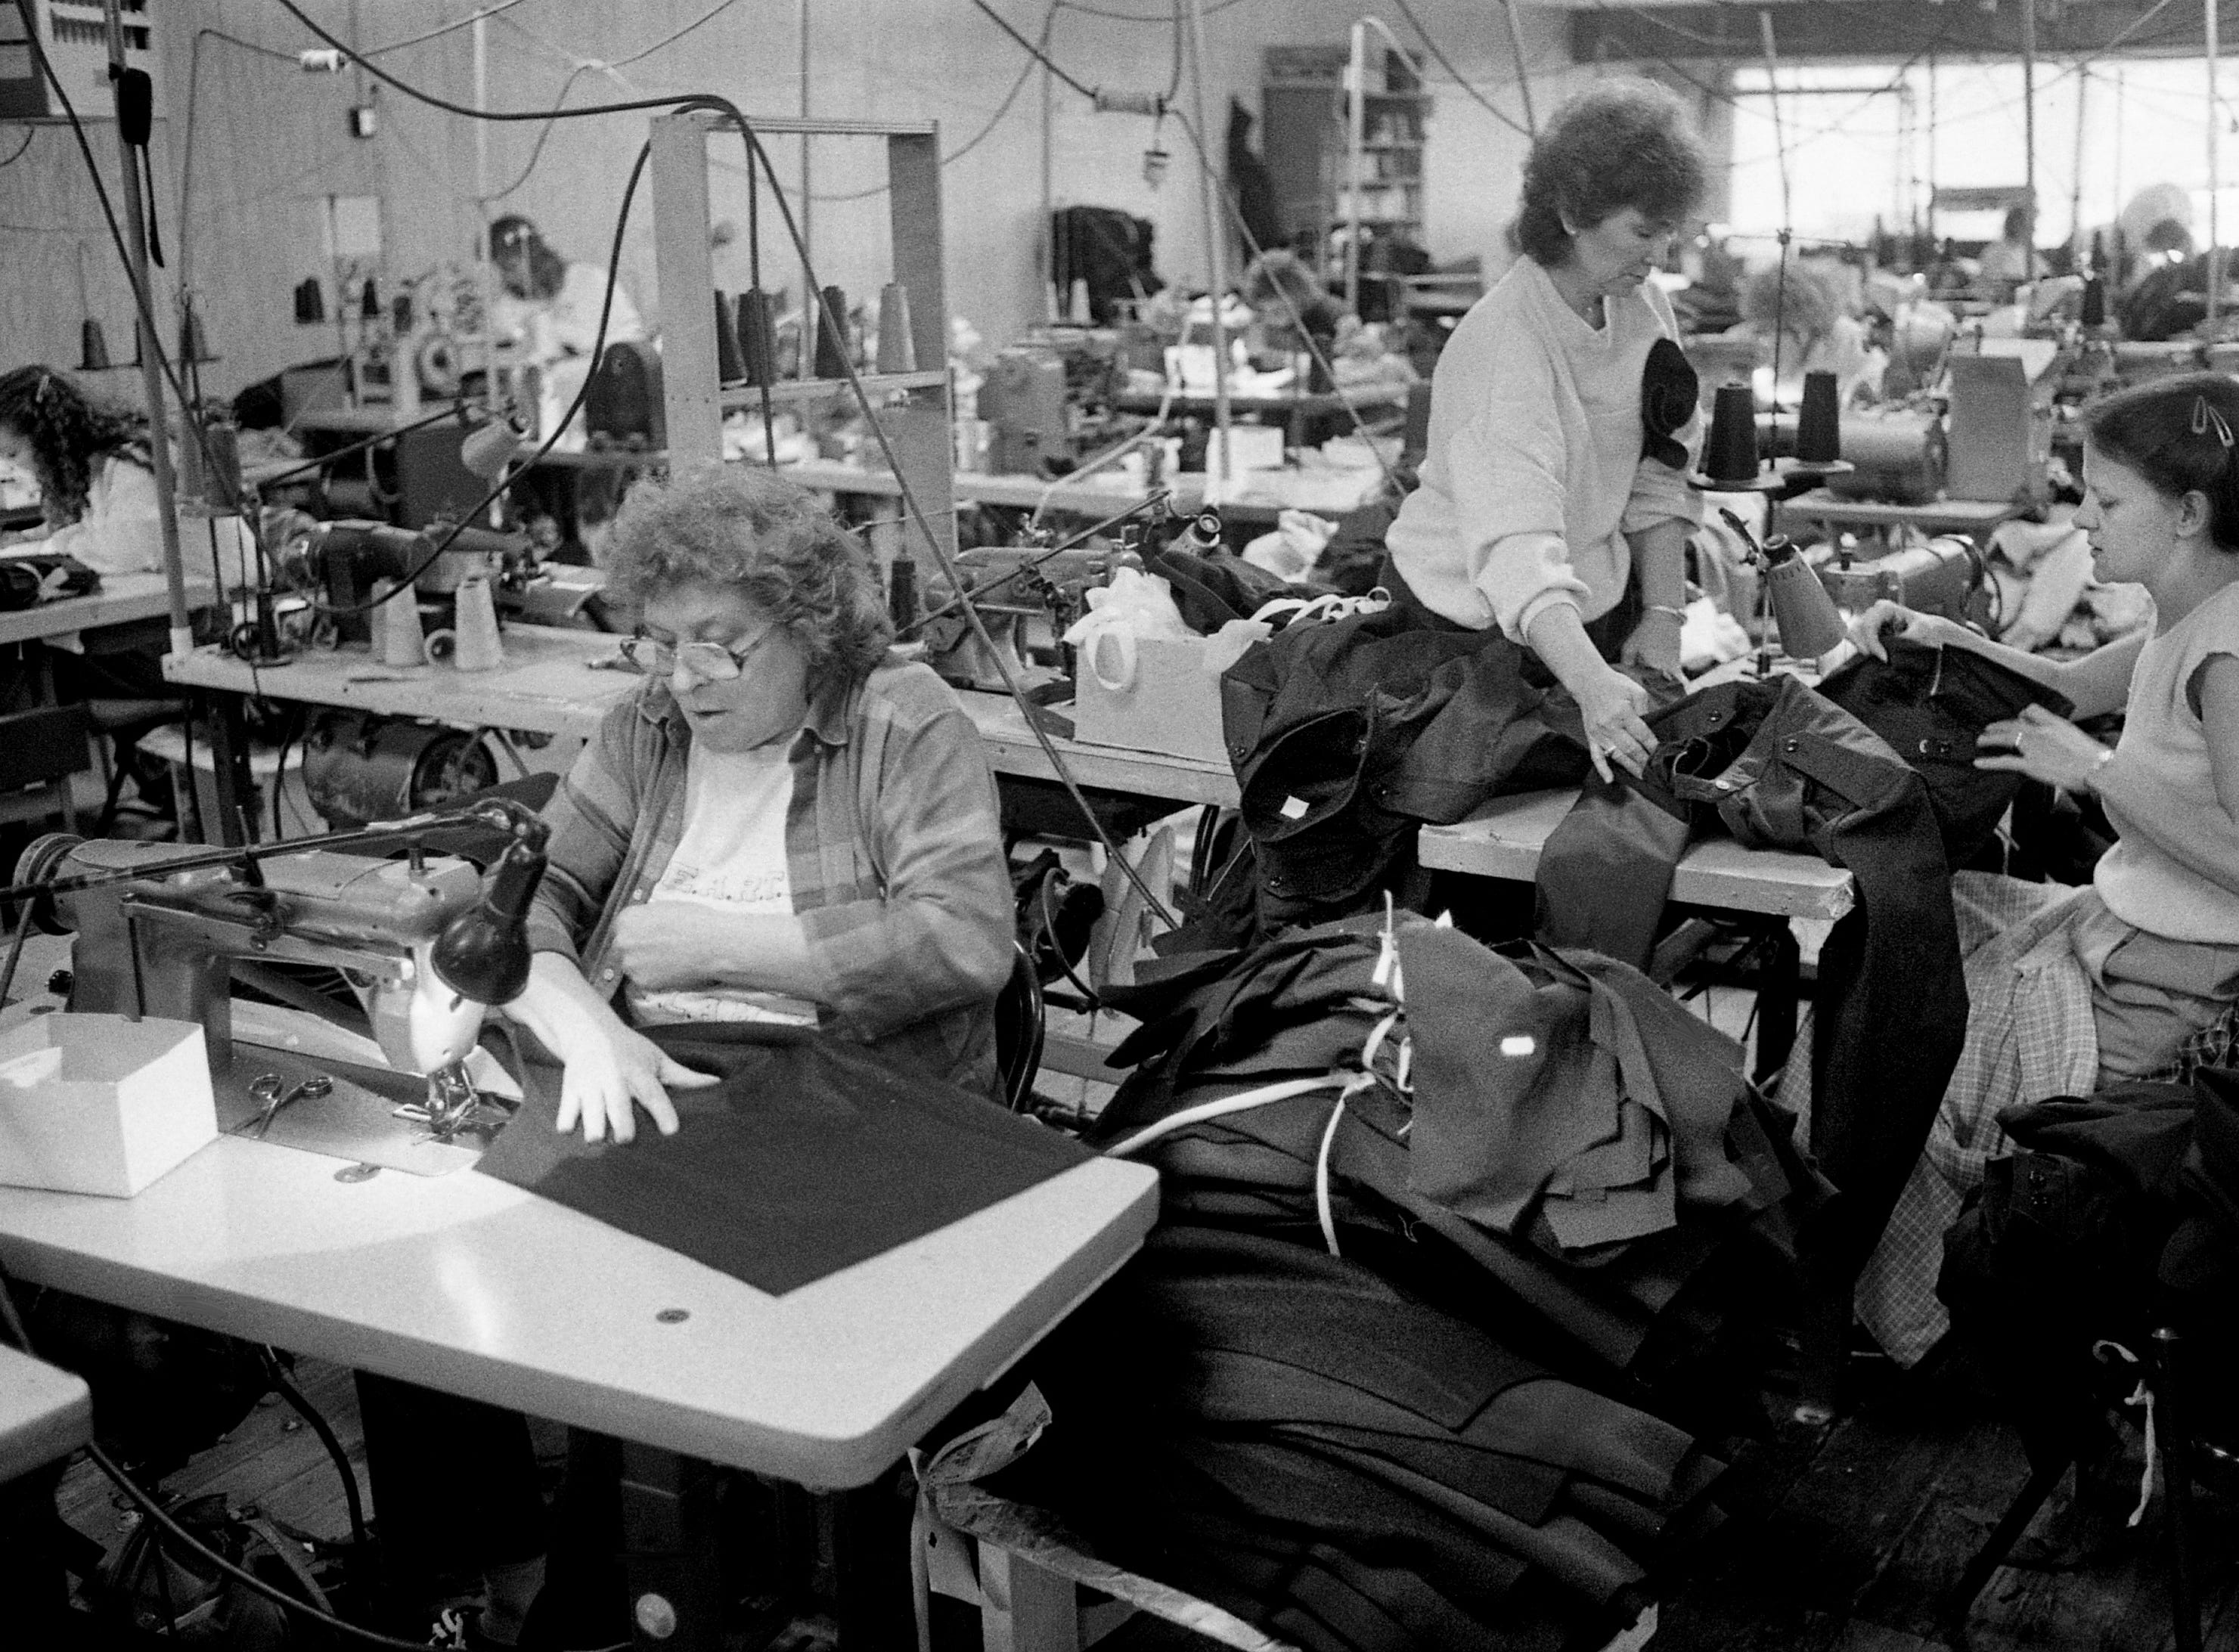 Sewing operator Corrine Sanders, left, works on a uniform jacket for the Navy as Joanne Green, standing, picks up completed garments from Susie O'Neal at the Custom Creations of Nashville plant in Westmoreland, Tenn., on Feb. 3, 1989.